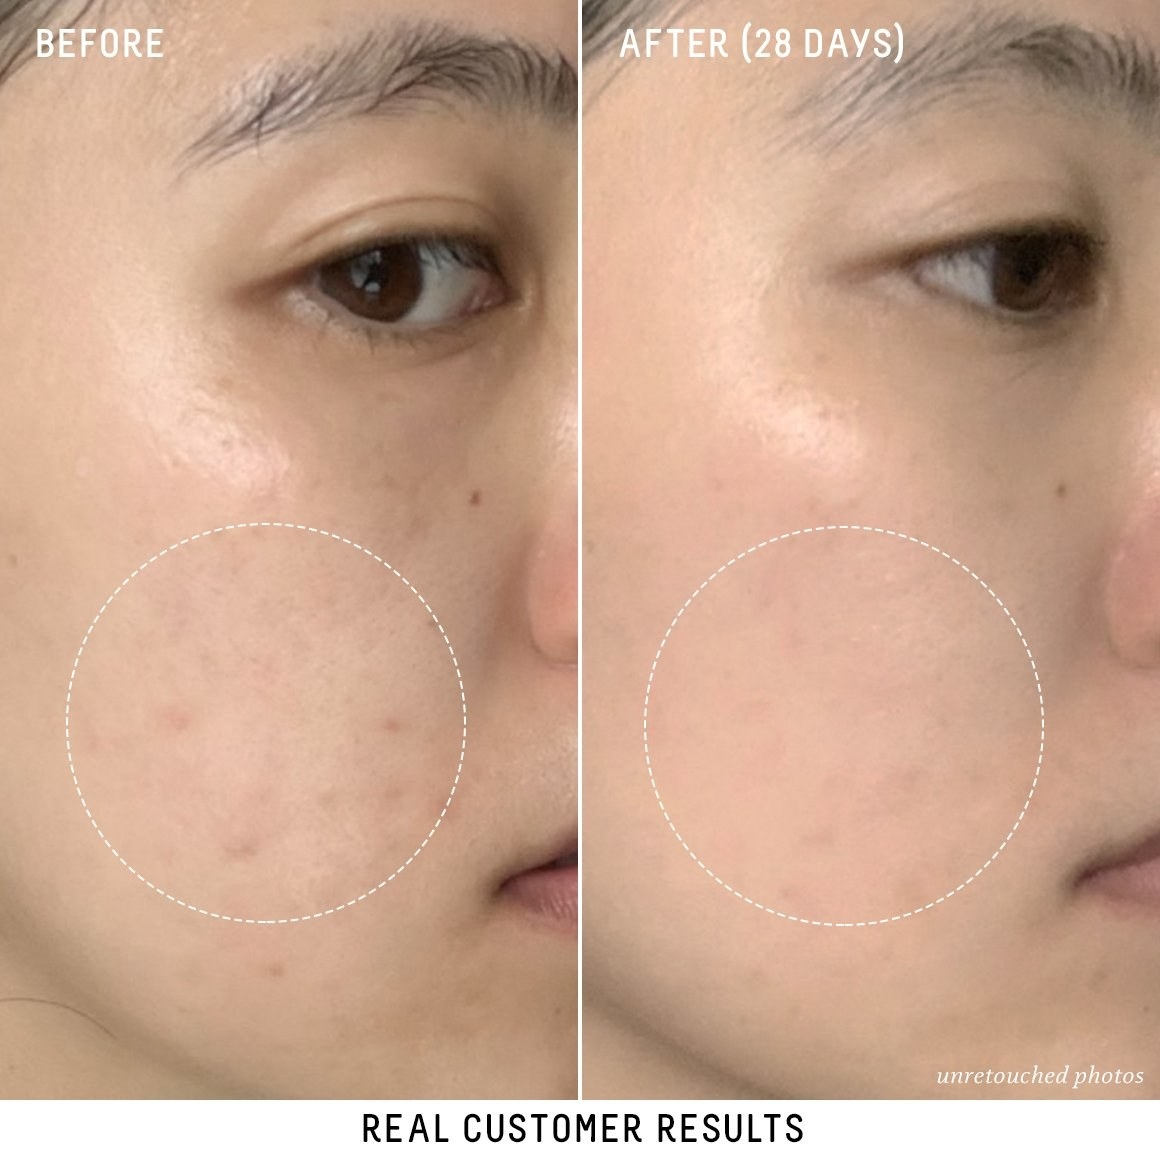 customer's before/after pic with before photo showing dark spots, possibly left behind from acne. after photo shows the spots have significantly faded.